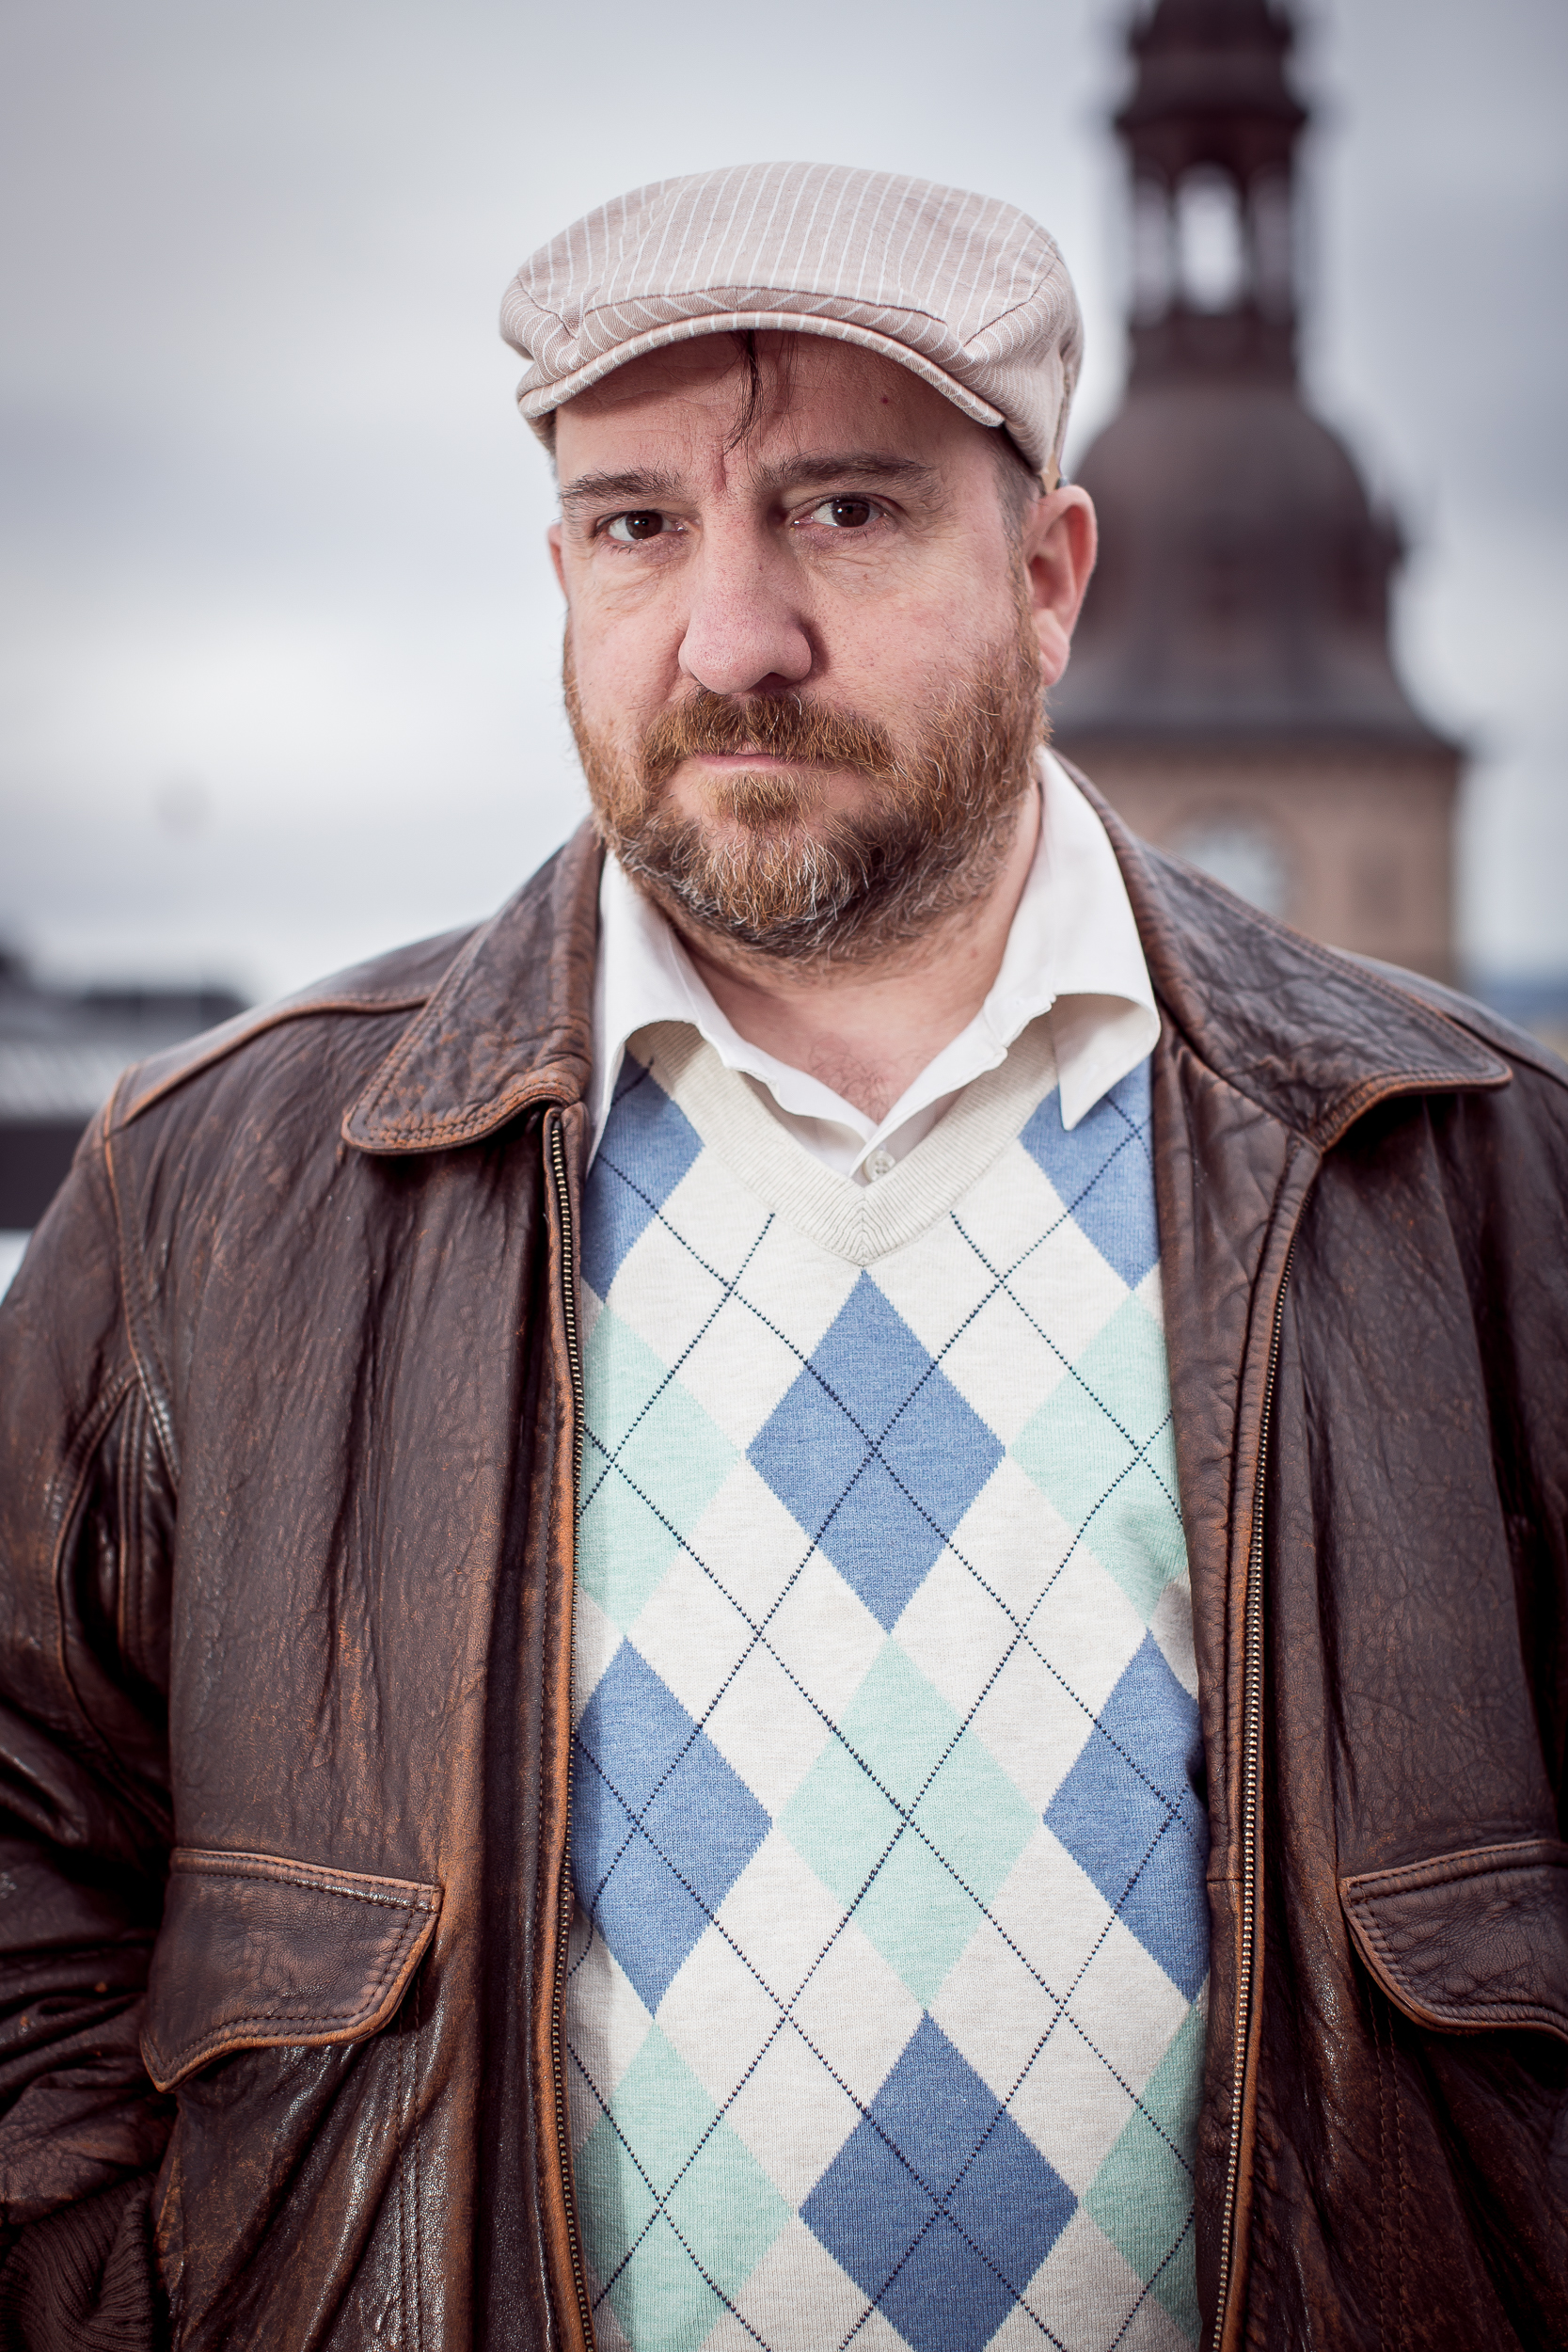 Stephin Merritt (of The Magnetic Fields) posing for a portrait in Oslo